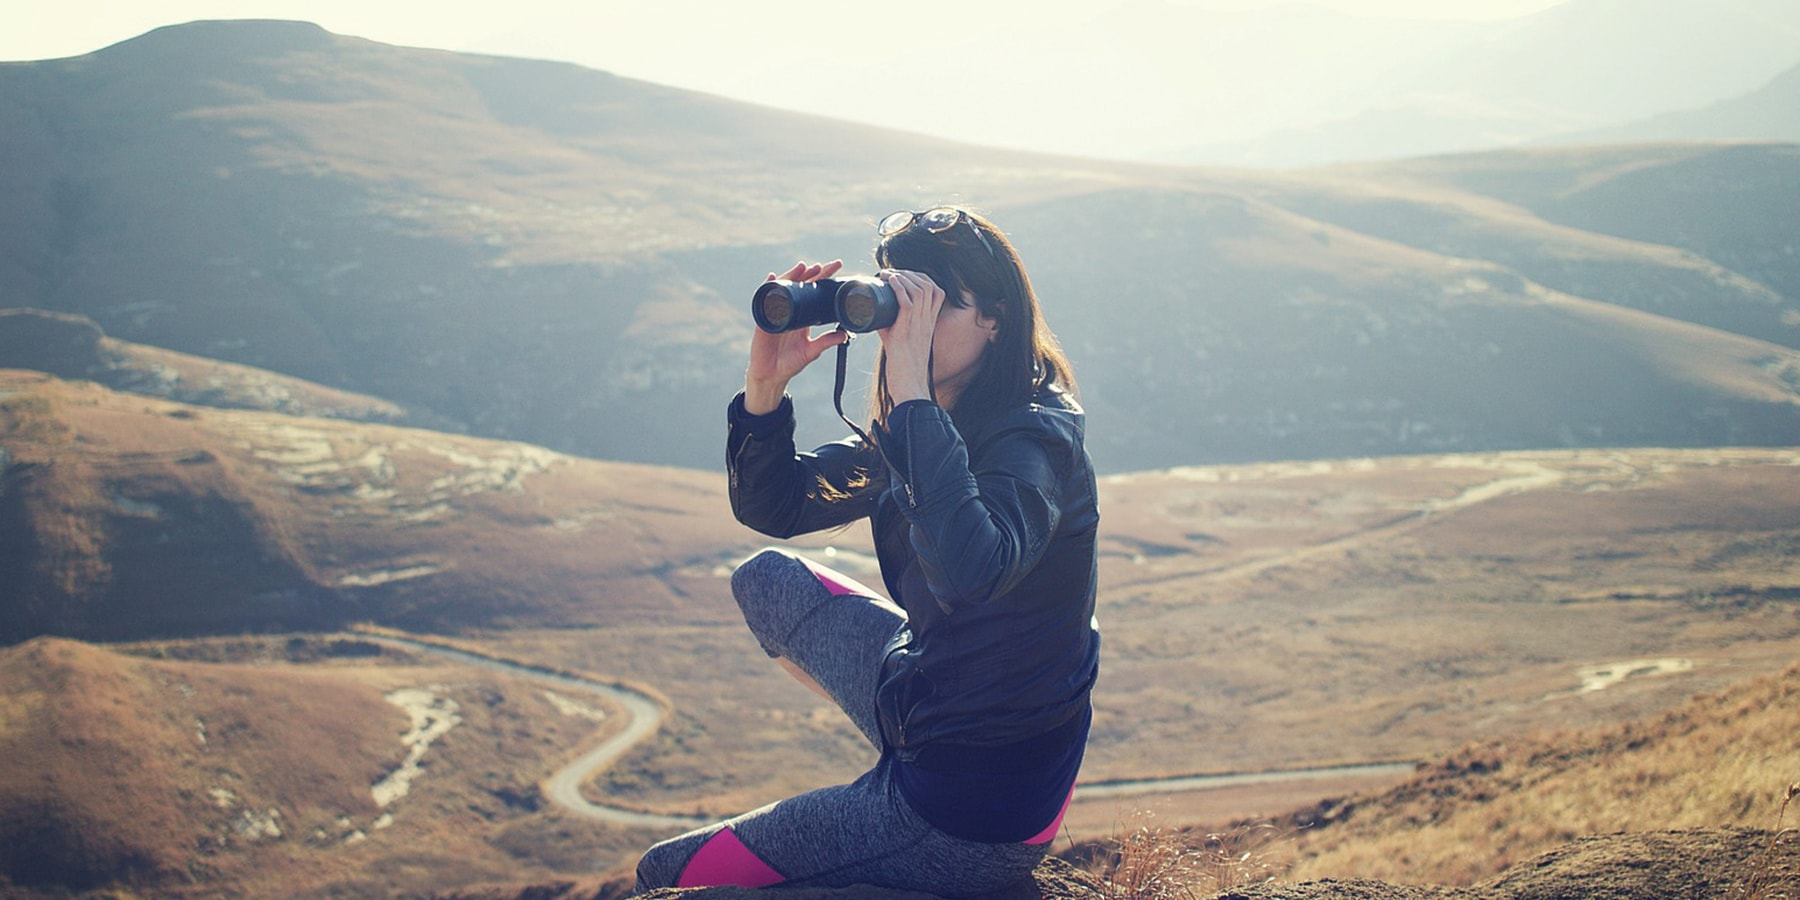 The Ultimate Guideline to Choose a Binocular